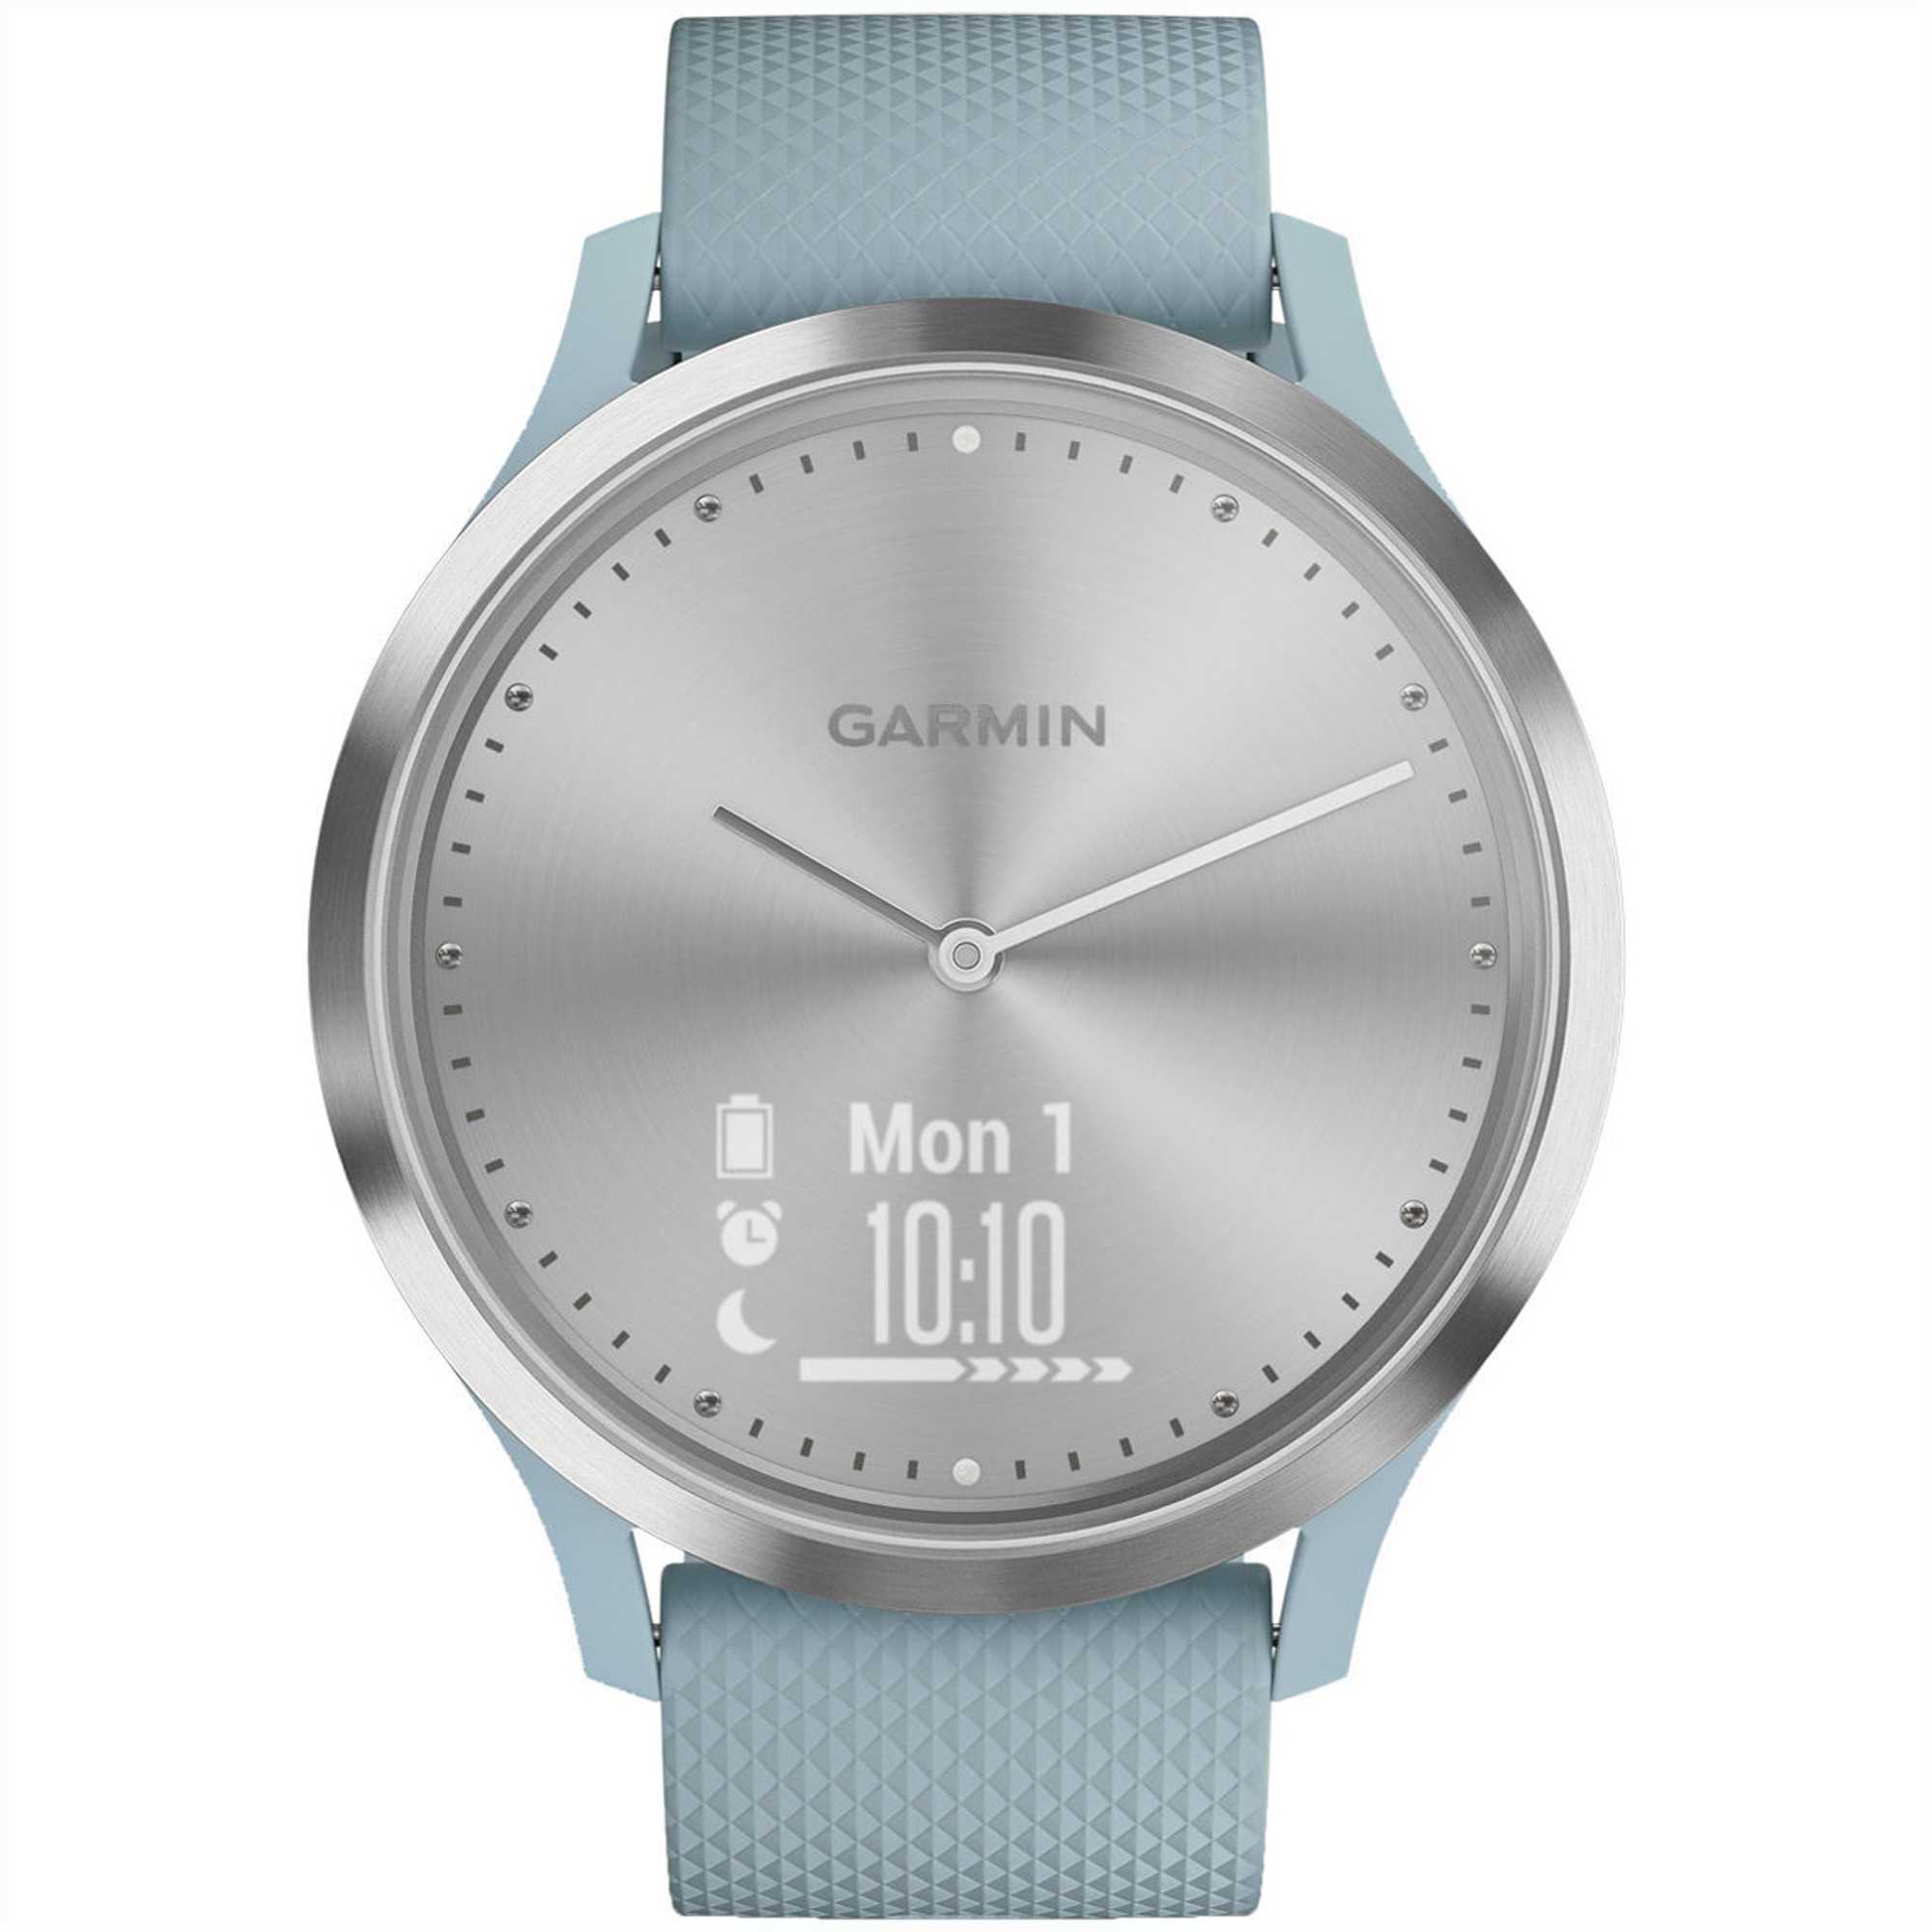 GARMIN vívomove HR Hybrid Smartwatch 010-01850-08